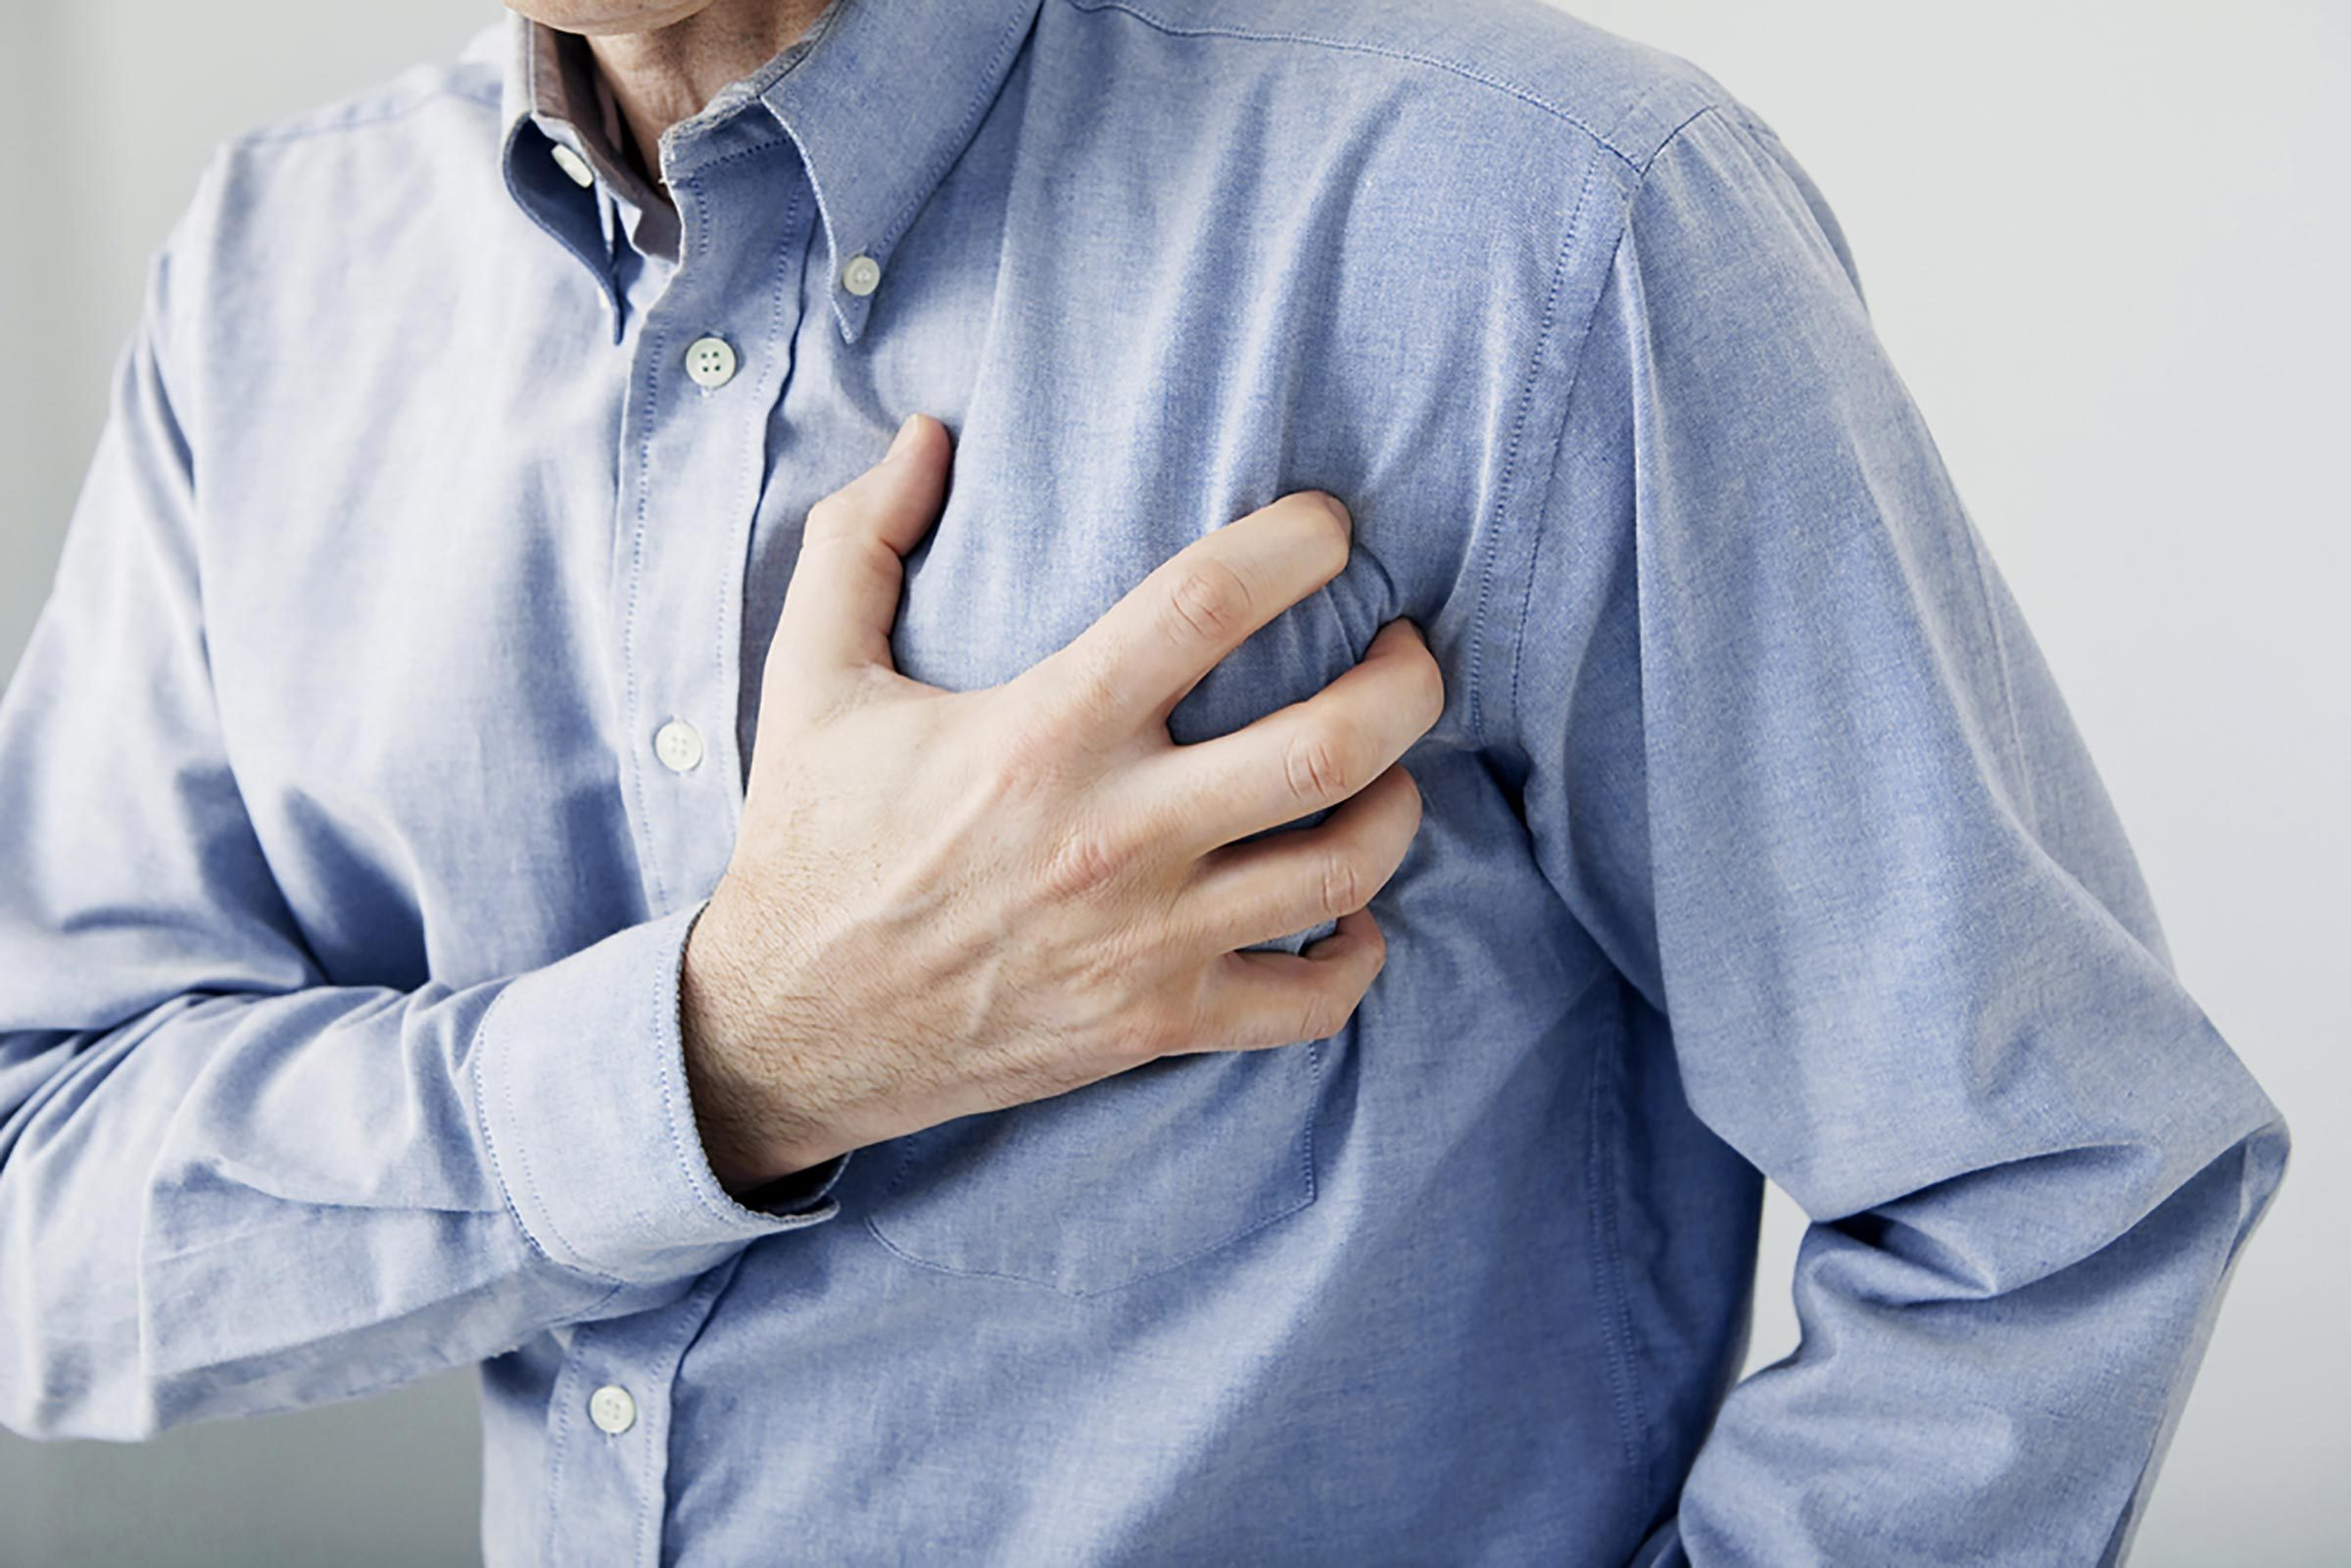 cardiac arrest vs heart attack how to tell the difference